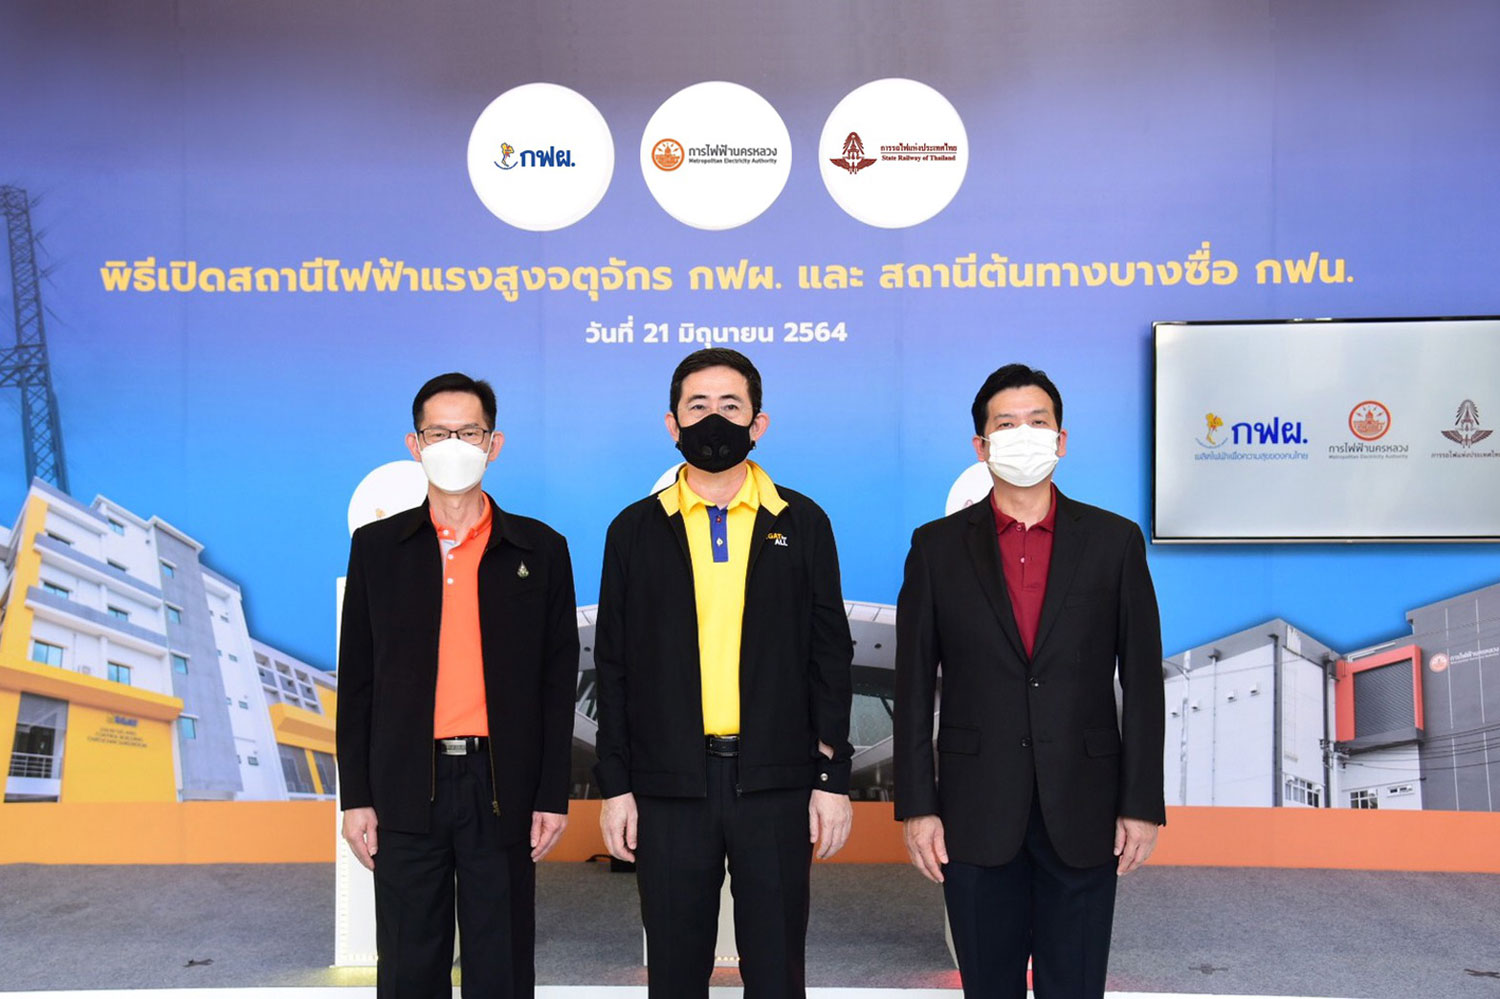 MEA teams up with EGAT and SRT in EV drive to achieve a clean-energy city and economic restart